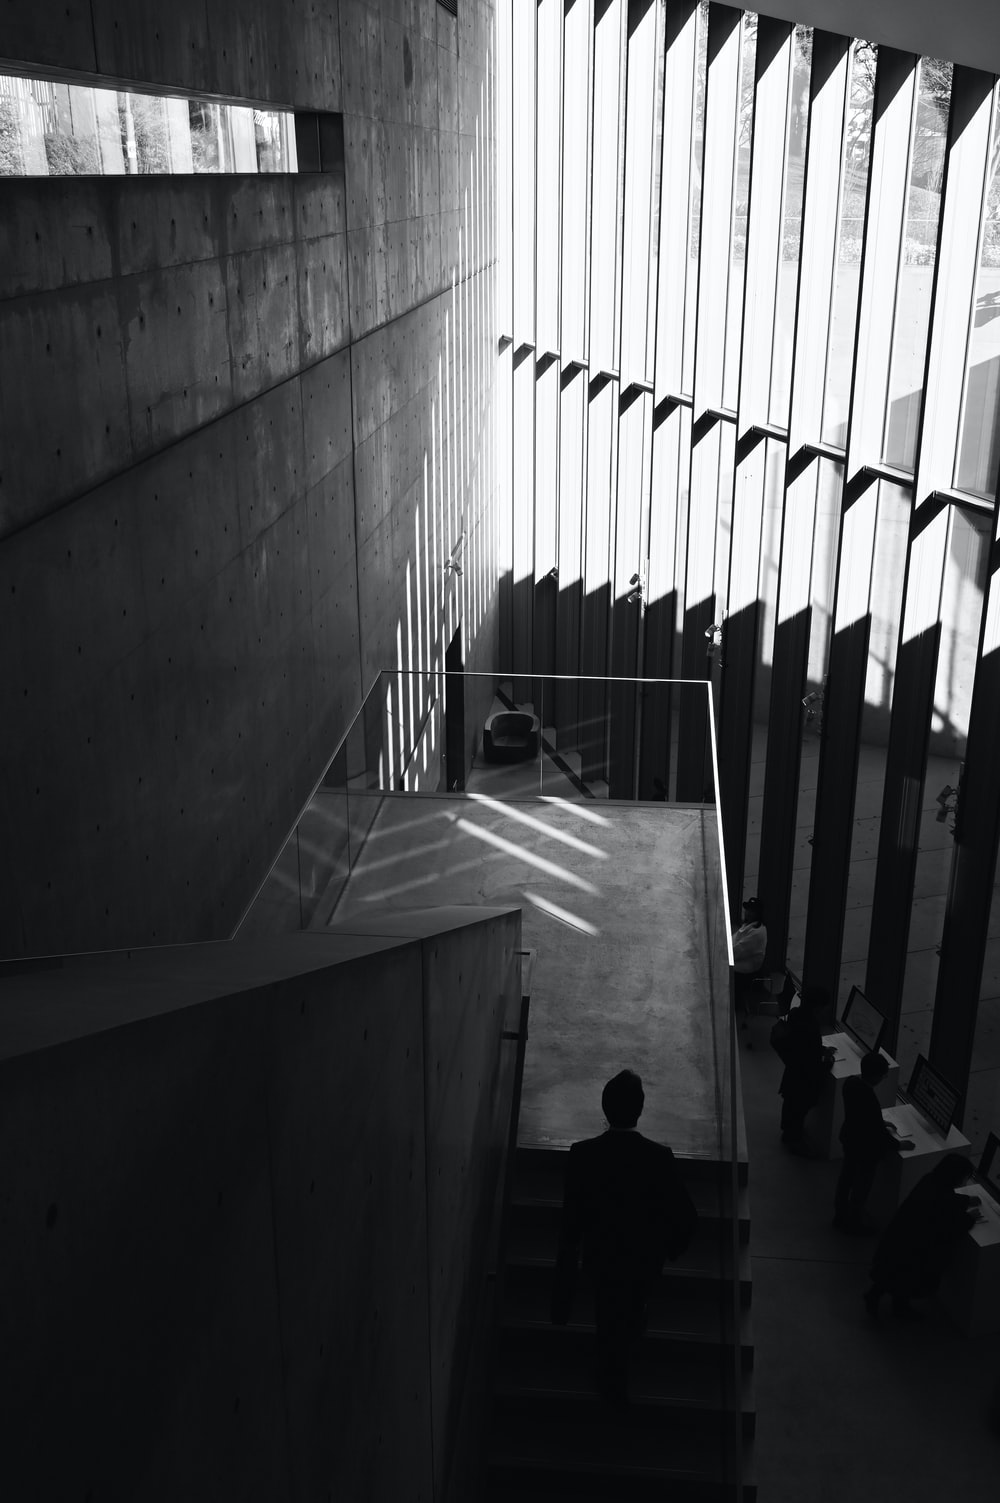 grayscale photo of person walking on stairs